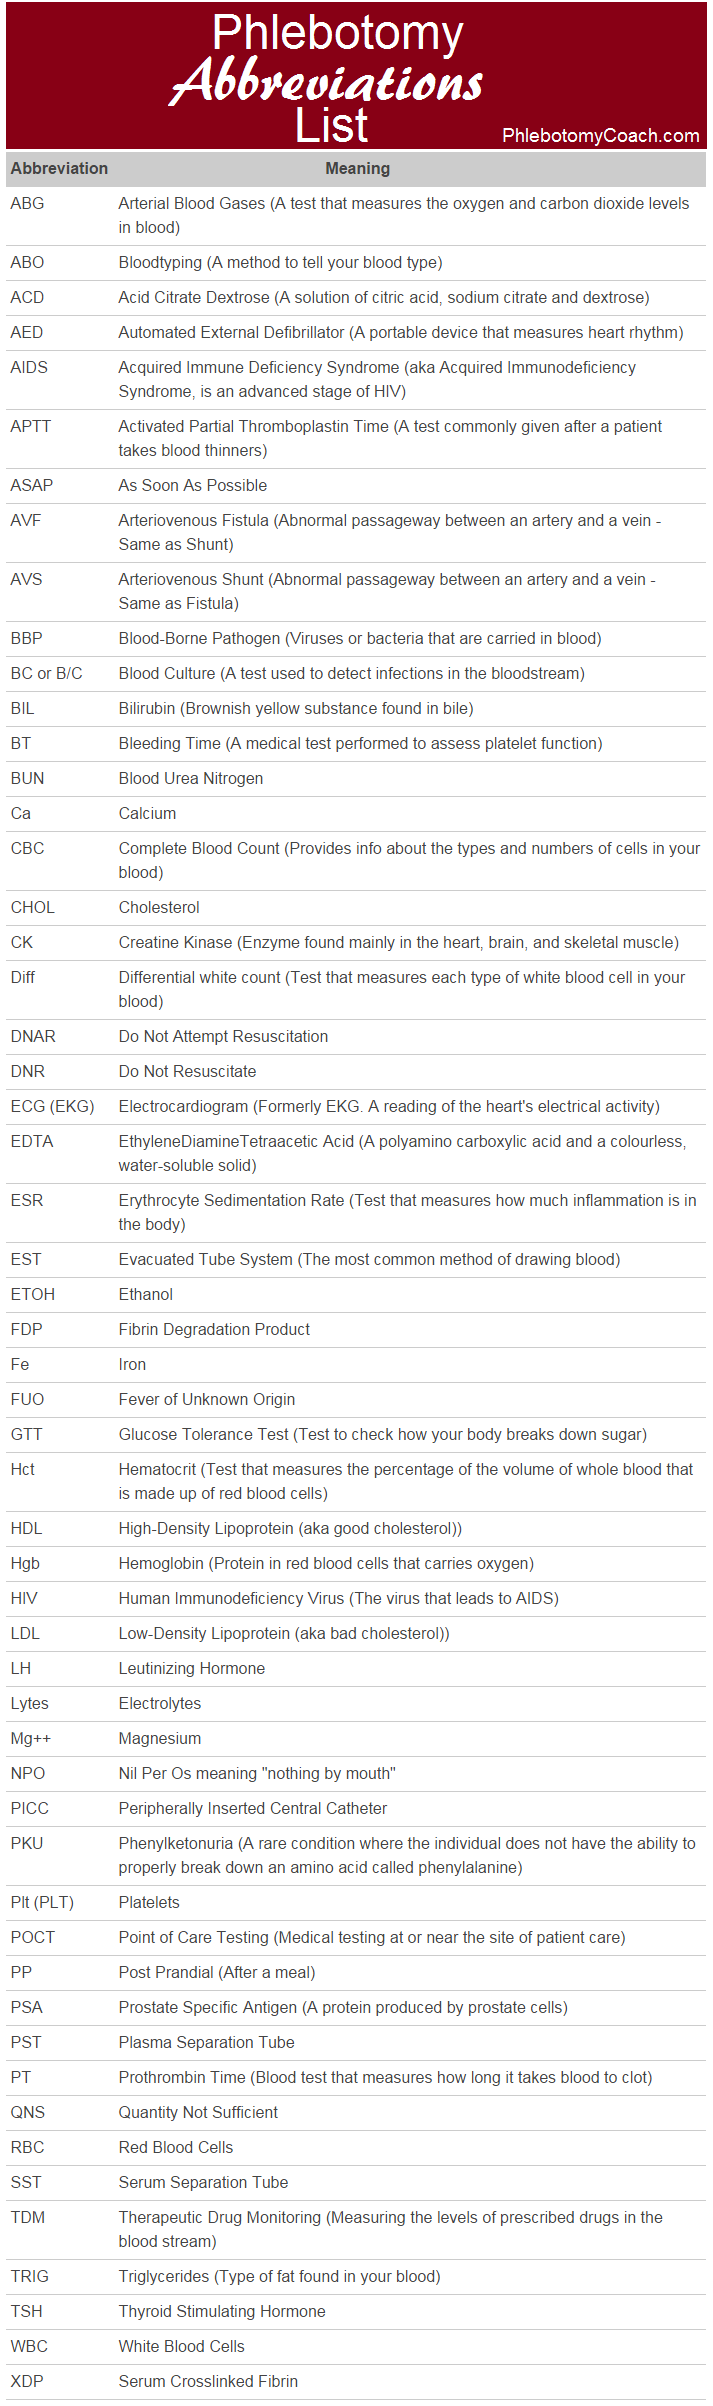 Phlebotomy Abbreviations List Plus Click Through For Their